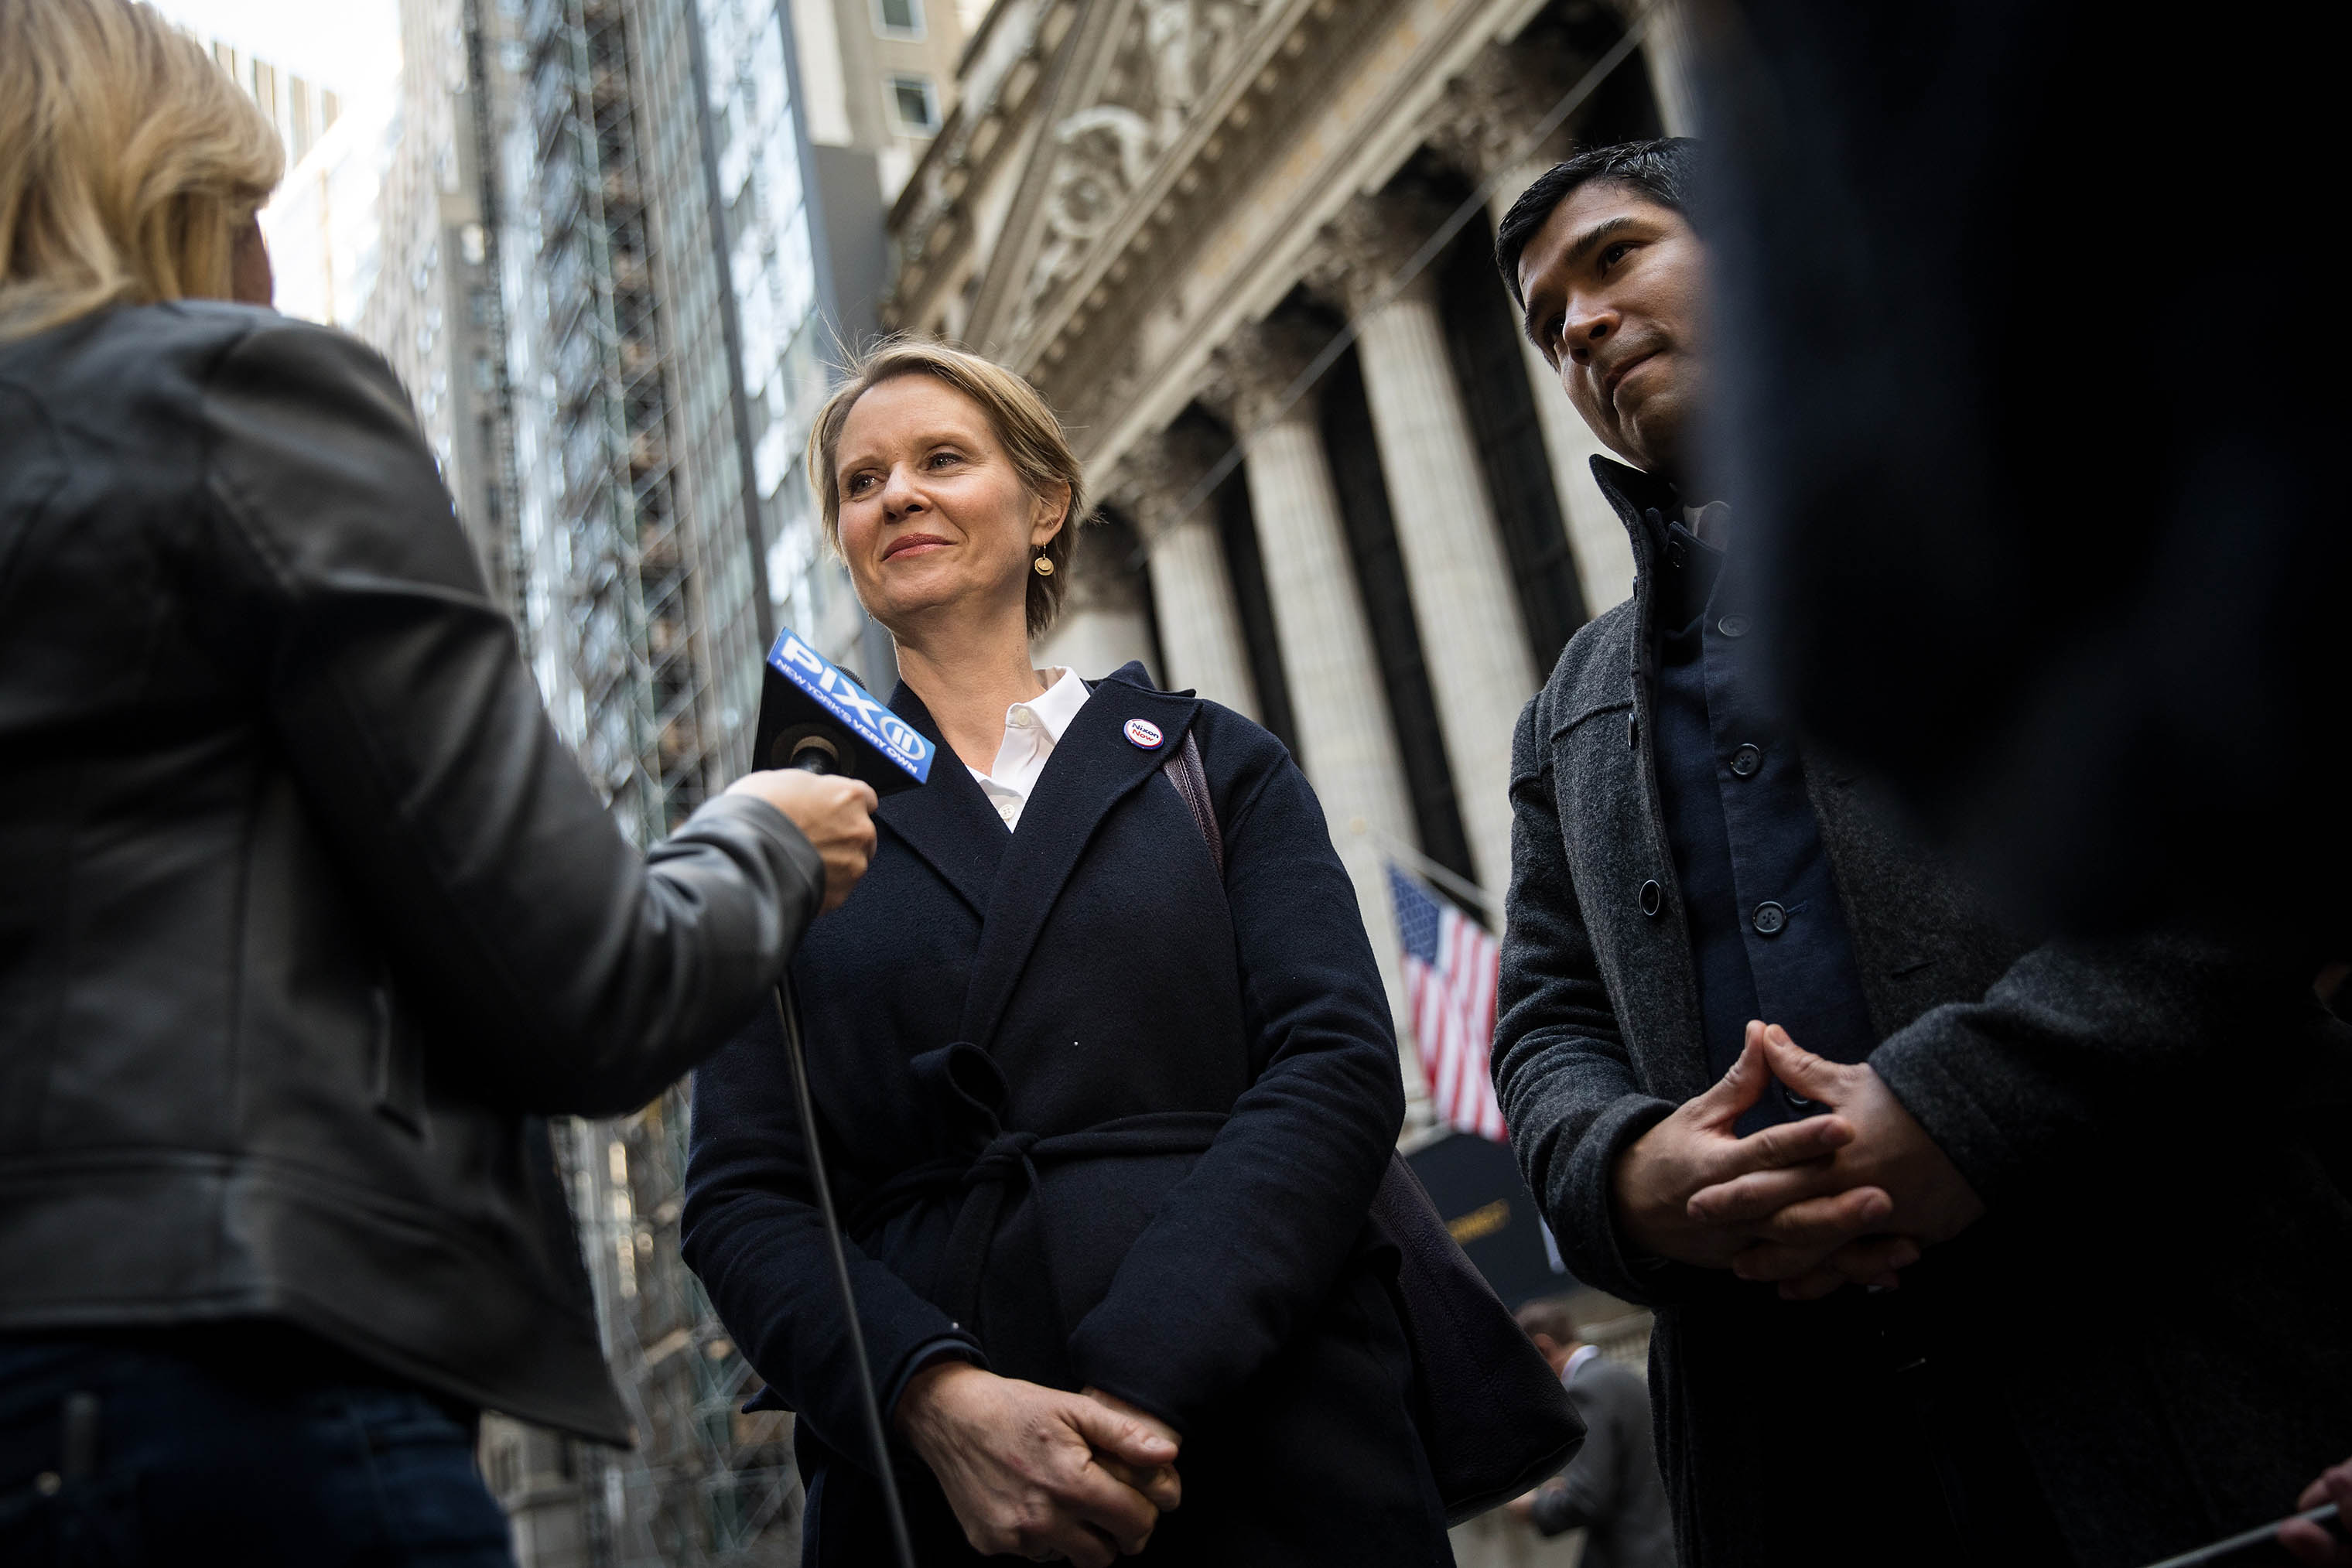 New York gubernatorial candidate Cynthia Nixon speaks with reporters following a rally against financial institutions' support of private prisons and immigrant detention centers near Wall Street on May 1, 2018 in New York City.